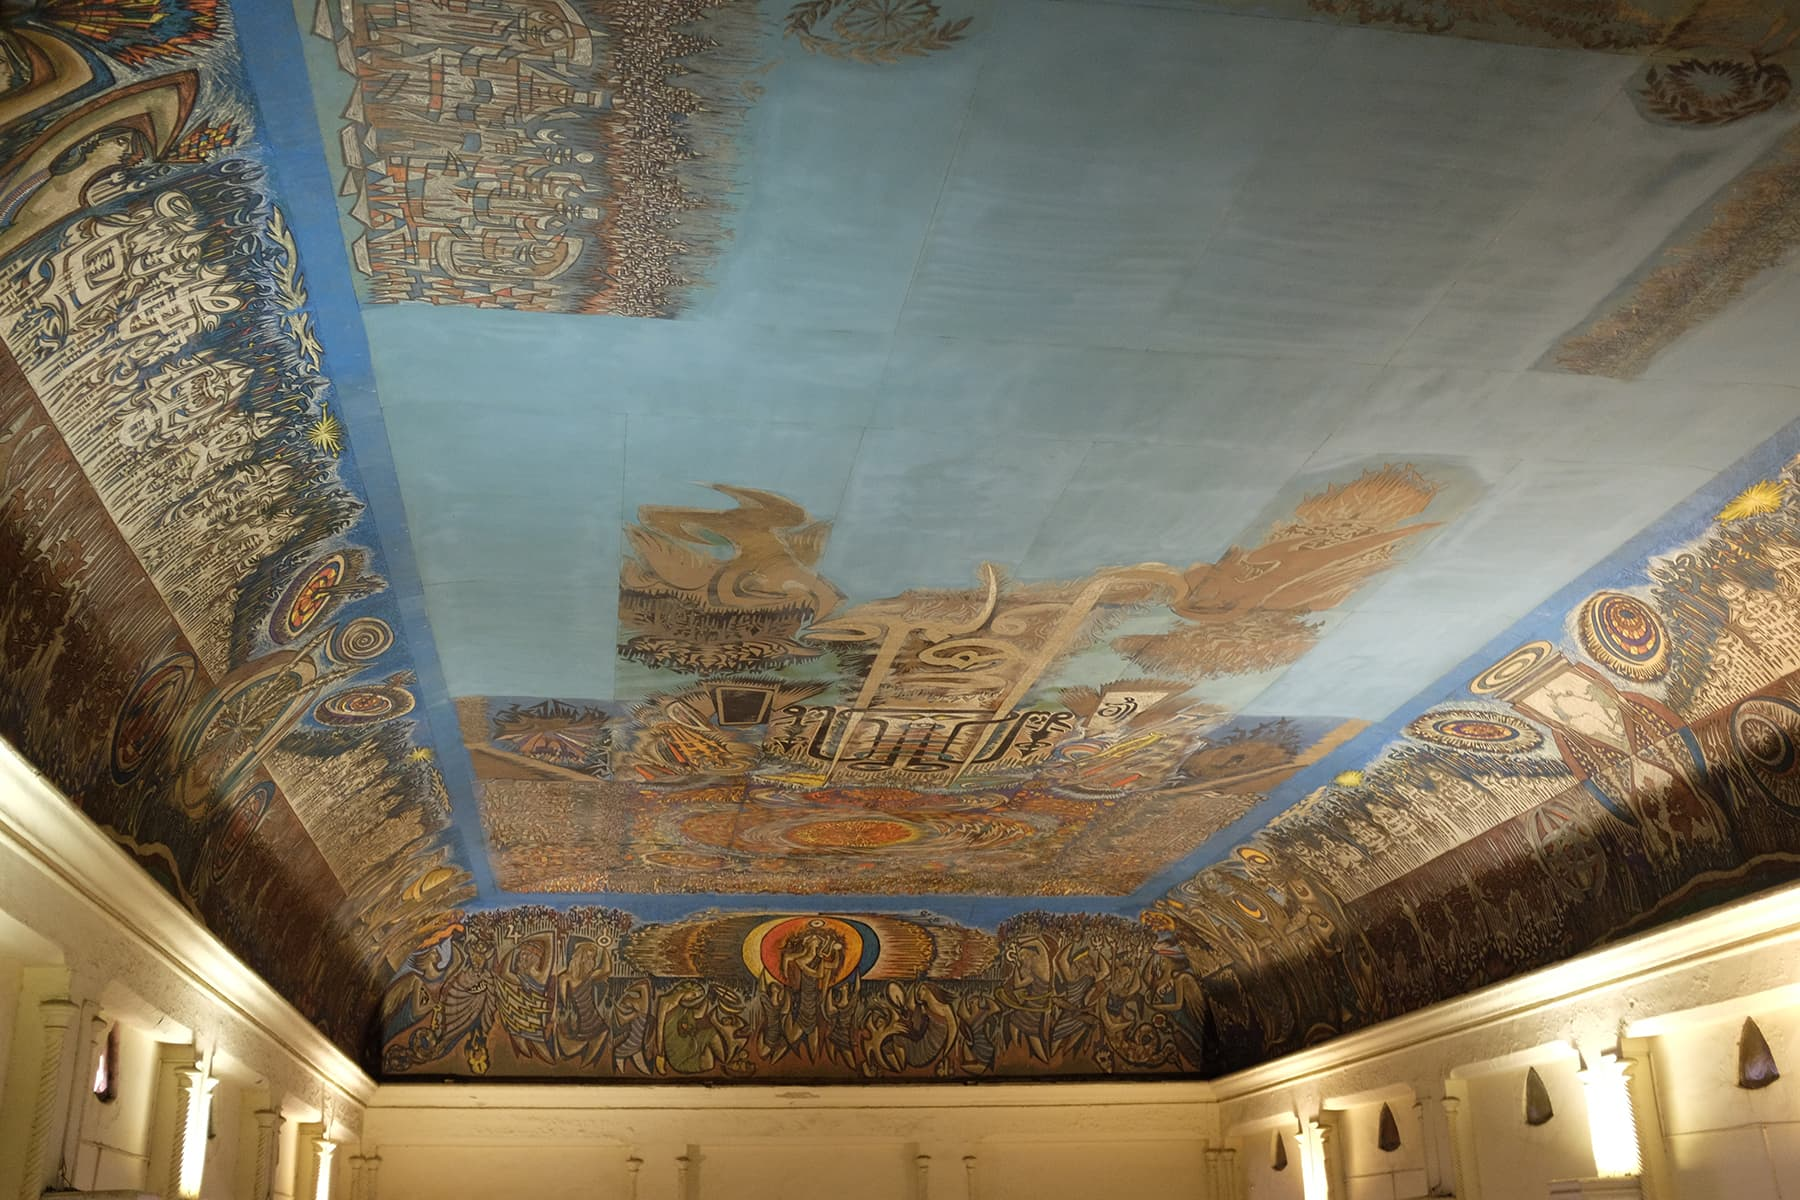 Frere Hall – Sadequain's mural on the ceiling.